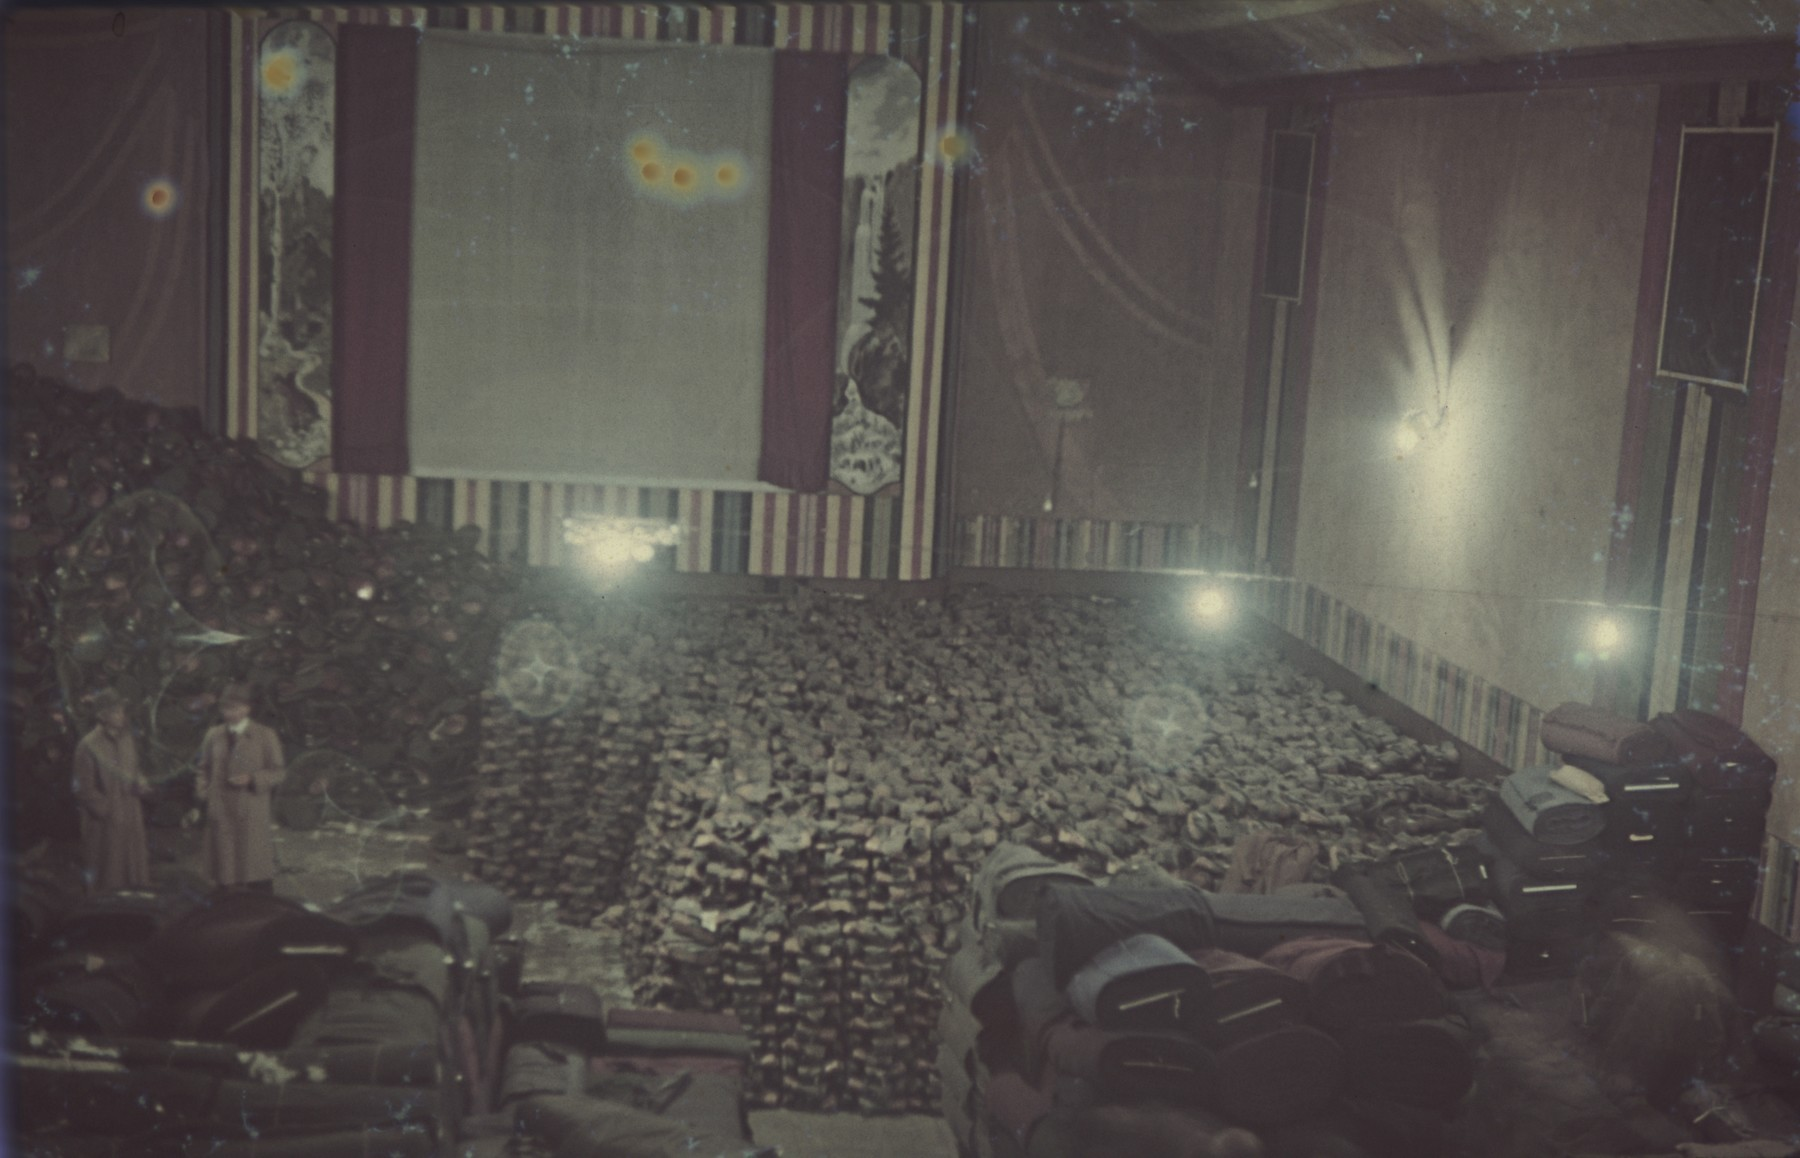 """Piles of supplies, textiles and material are piled up in a former cinema.  Original German caption: """"Lager in einem Kino"""" (warehouse in a cinema)."""